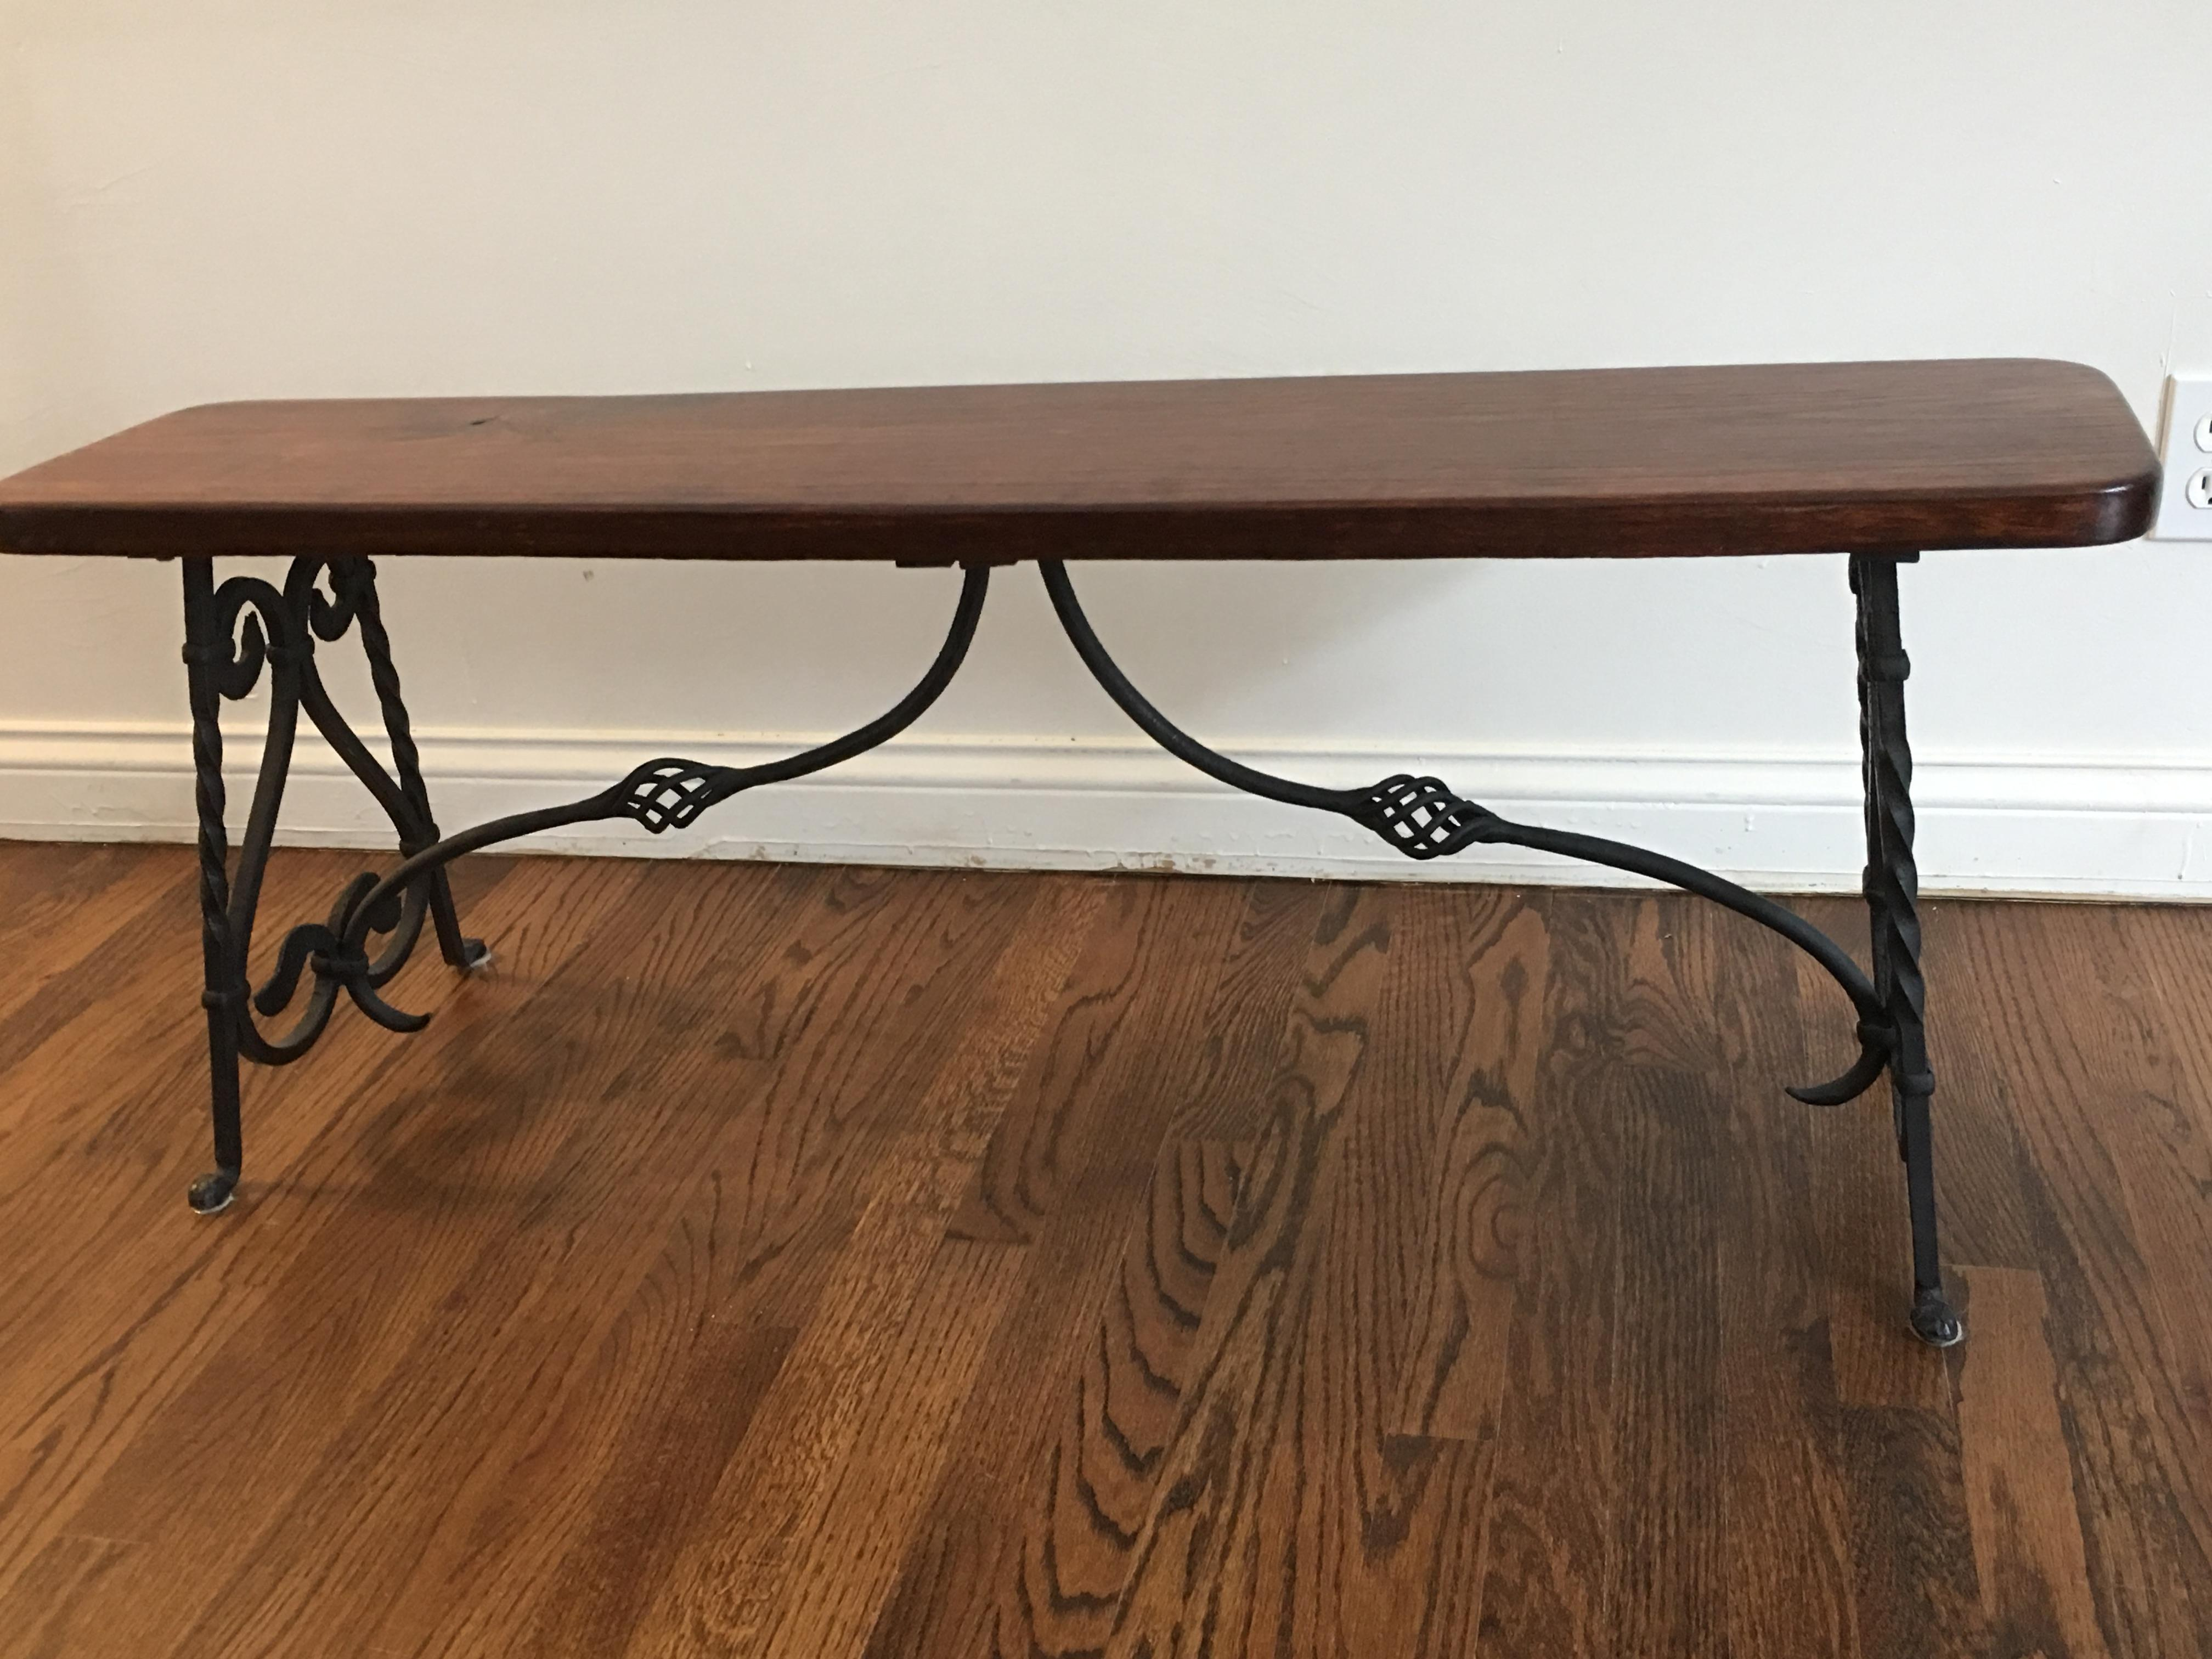 1900 Antique Wrought Iron Dining Table amp Benches Chairish : 2bdee621 cadd 4964 aff1 0e7458262dbcaspectfitampwidth640ampheight640 from www.chairish.com size 640 x 640 jpeg 43kB